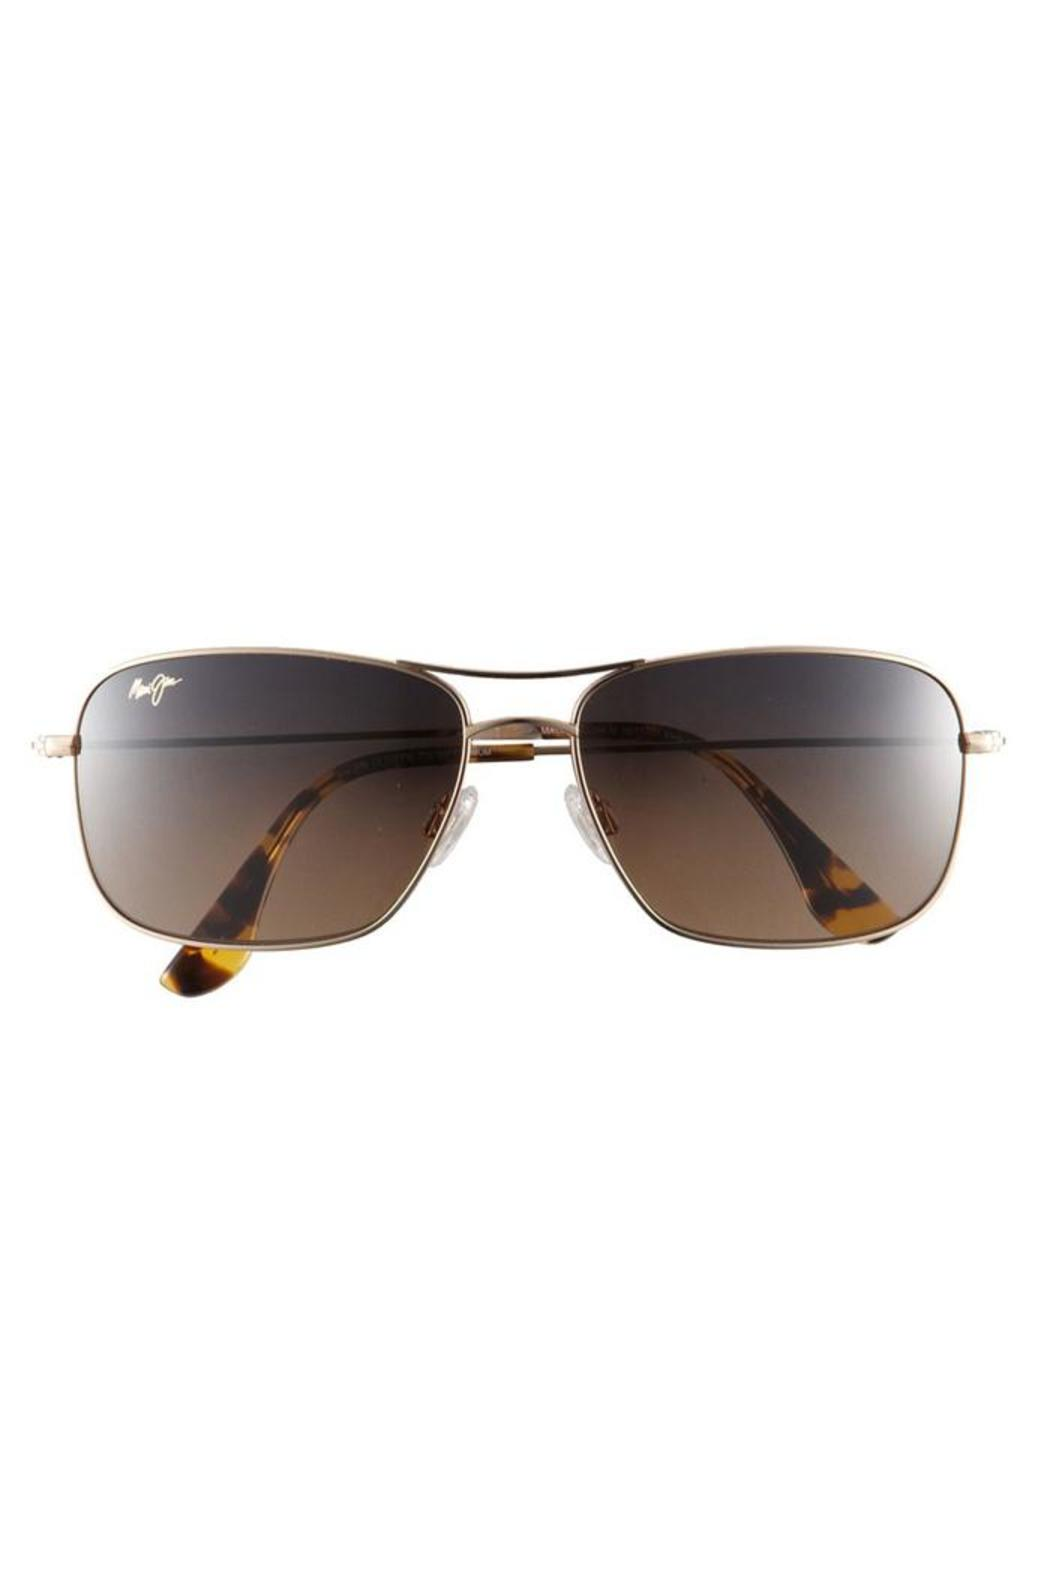 Online Shop Sunglasses. Ray-Ban, Oakley, Carrera, Arnette, Persol. cansechesma.cf is Europe's fastest growing company, selling % genuine top brand designer sunglasses in the UK at the lowest prices. You can buy leading brand sunglasses for up to 40% discount including free cansechesma.cf amazing discounts are offered to you all throughout the year- Everyday is a sunglasses .